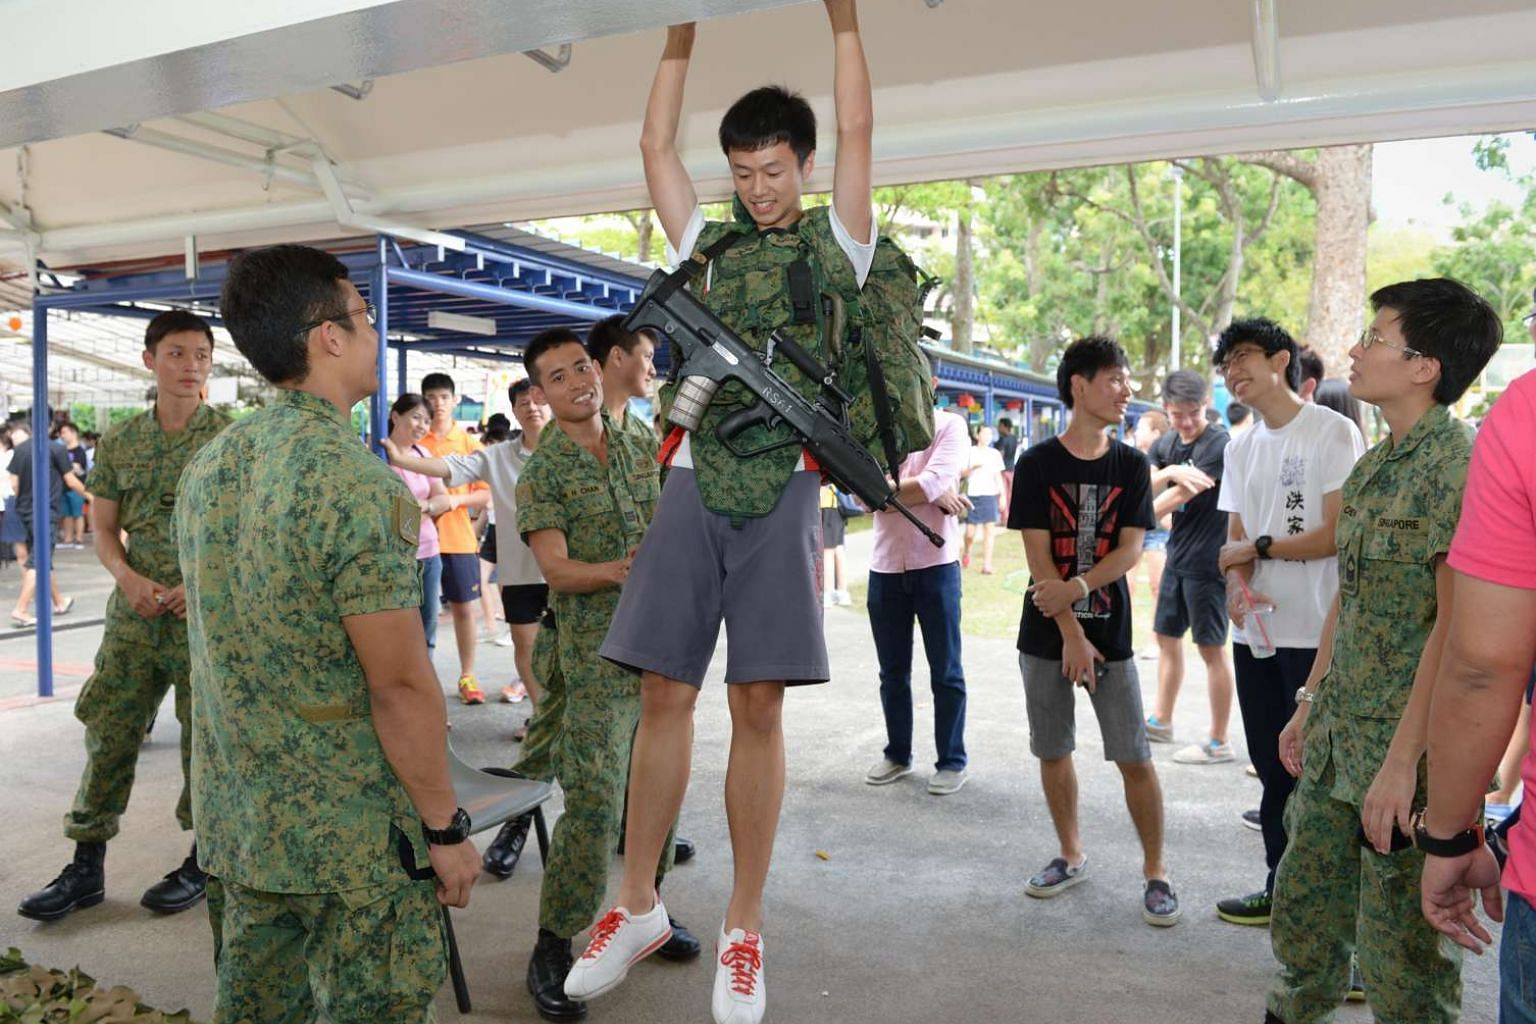 A pull-up challenge at a booth set up by the Singapore Artillery during Yishun JC's annual Celebrating Values Day. Yishun and Innova JCs, which will be merged, are committed to authentically and meaningfully preserving the heritage of both colleges.